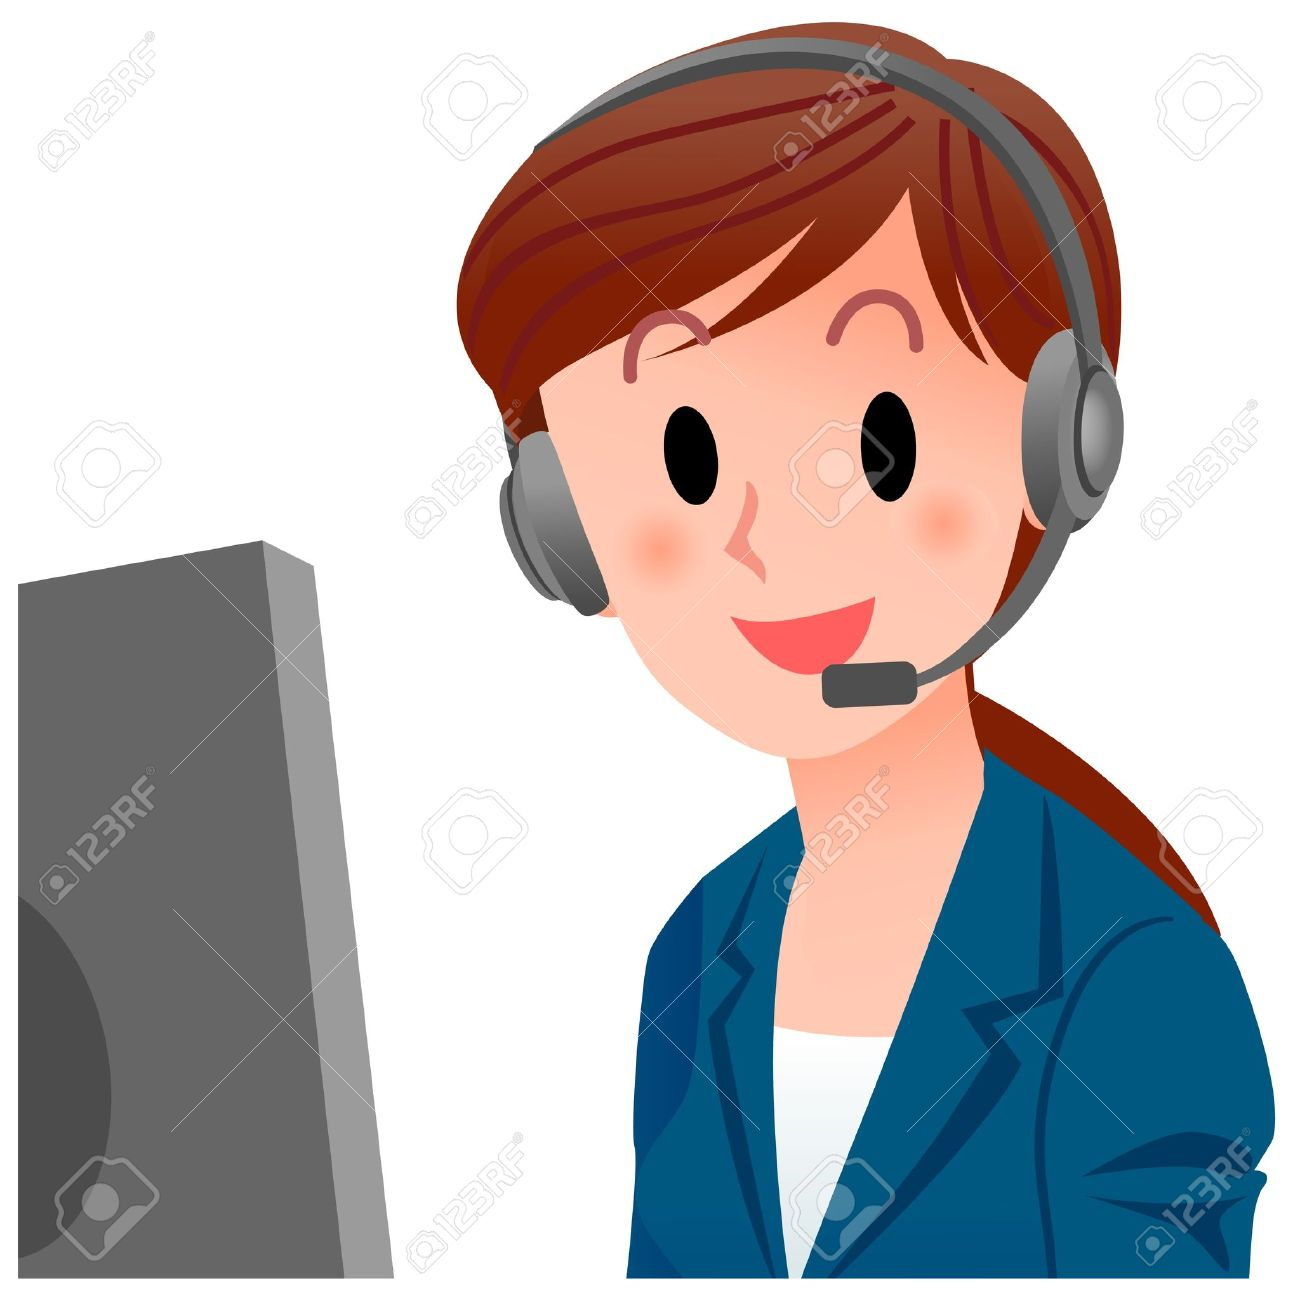 Customer service agent clipart 10 » Clipart Station.